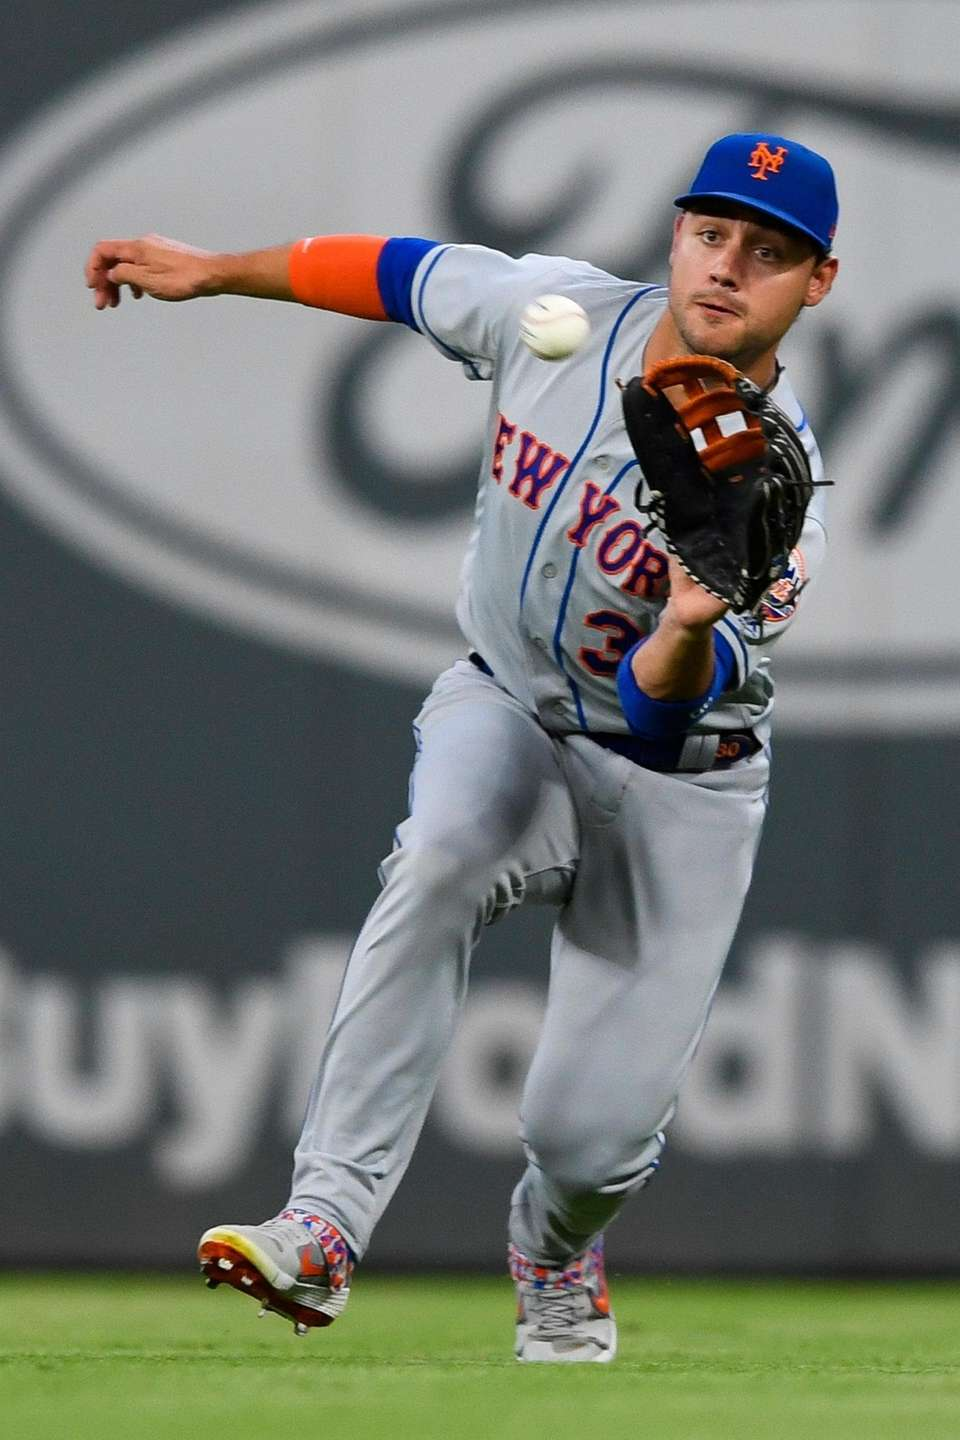 New York Mets right fielder Michael Conforto catches